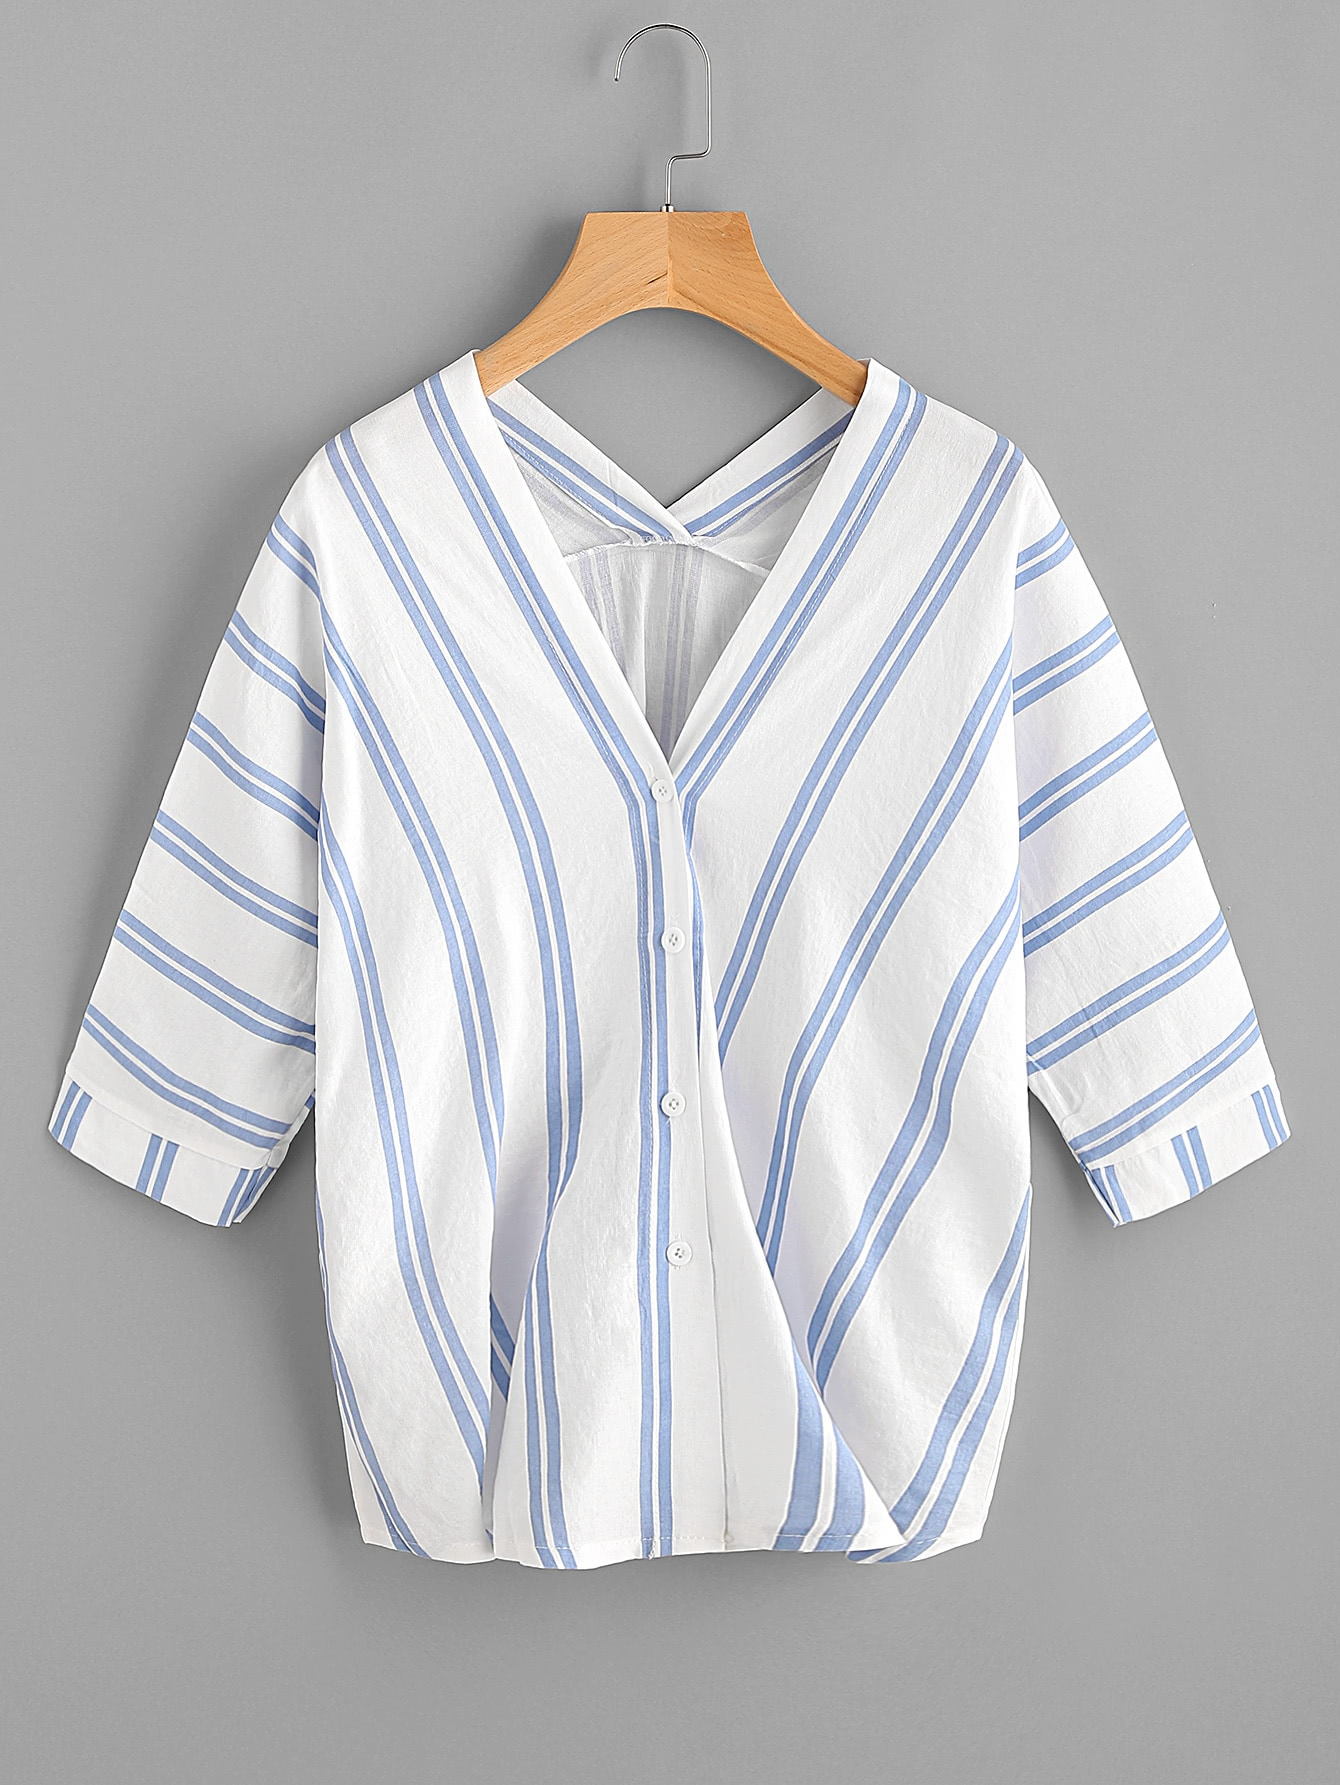 V-neckline Striped Blouse boat neckline striped blouse with buttons